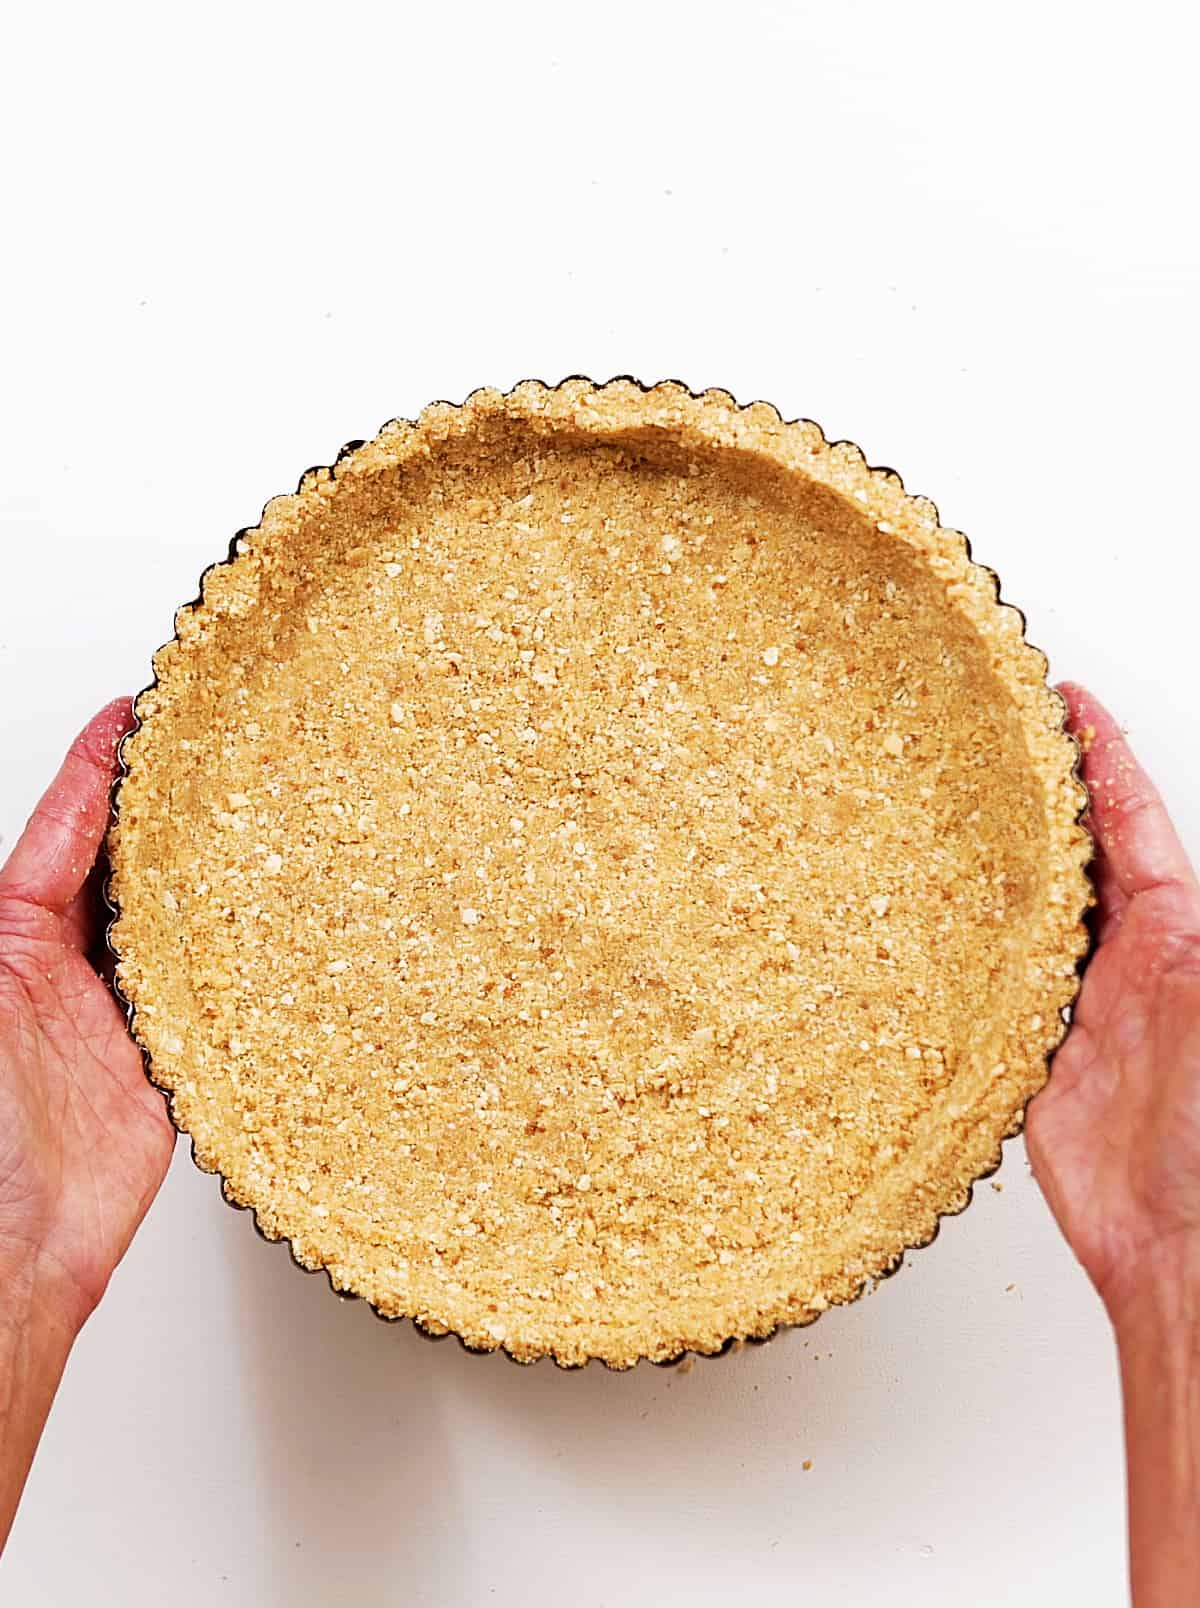 Top view of hands holding graham cracker crust on white surface